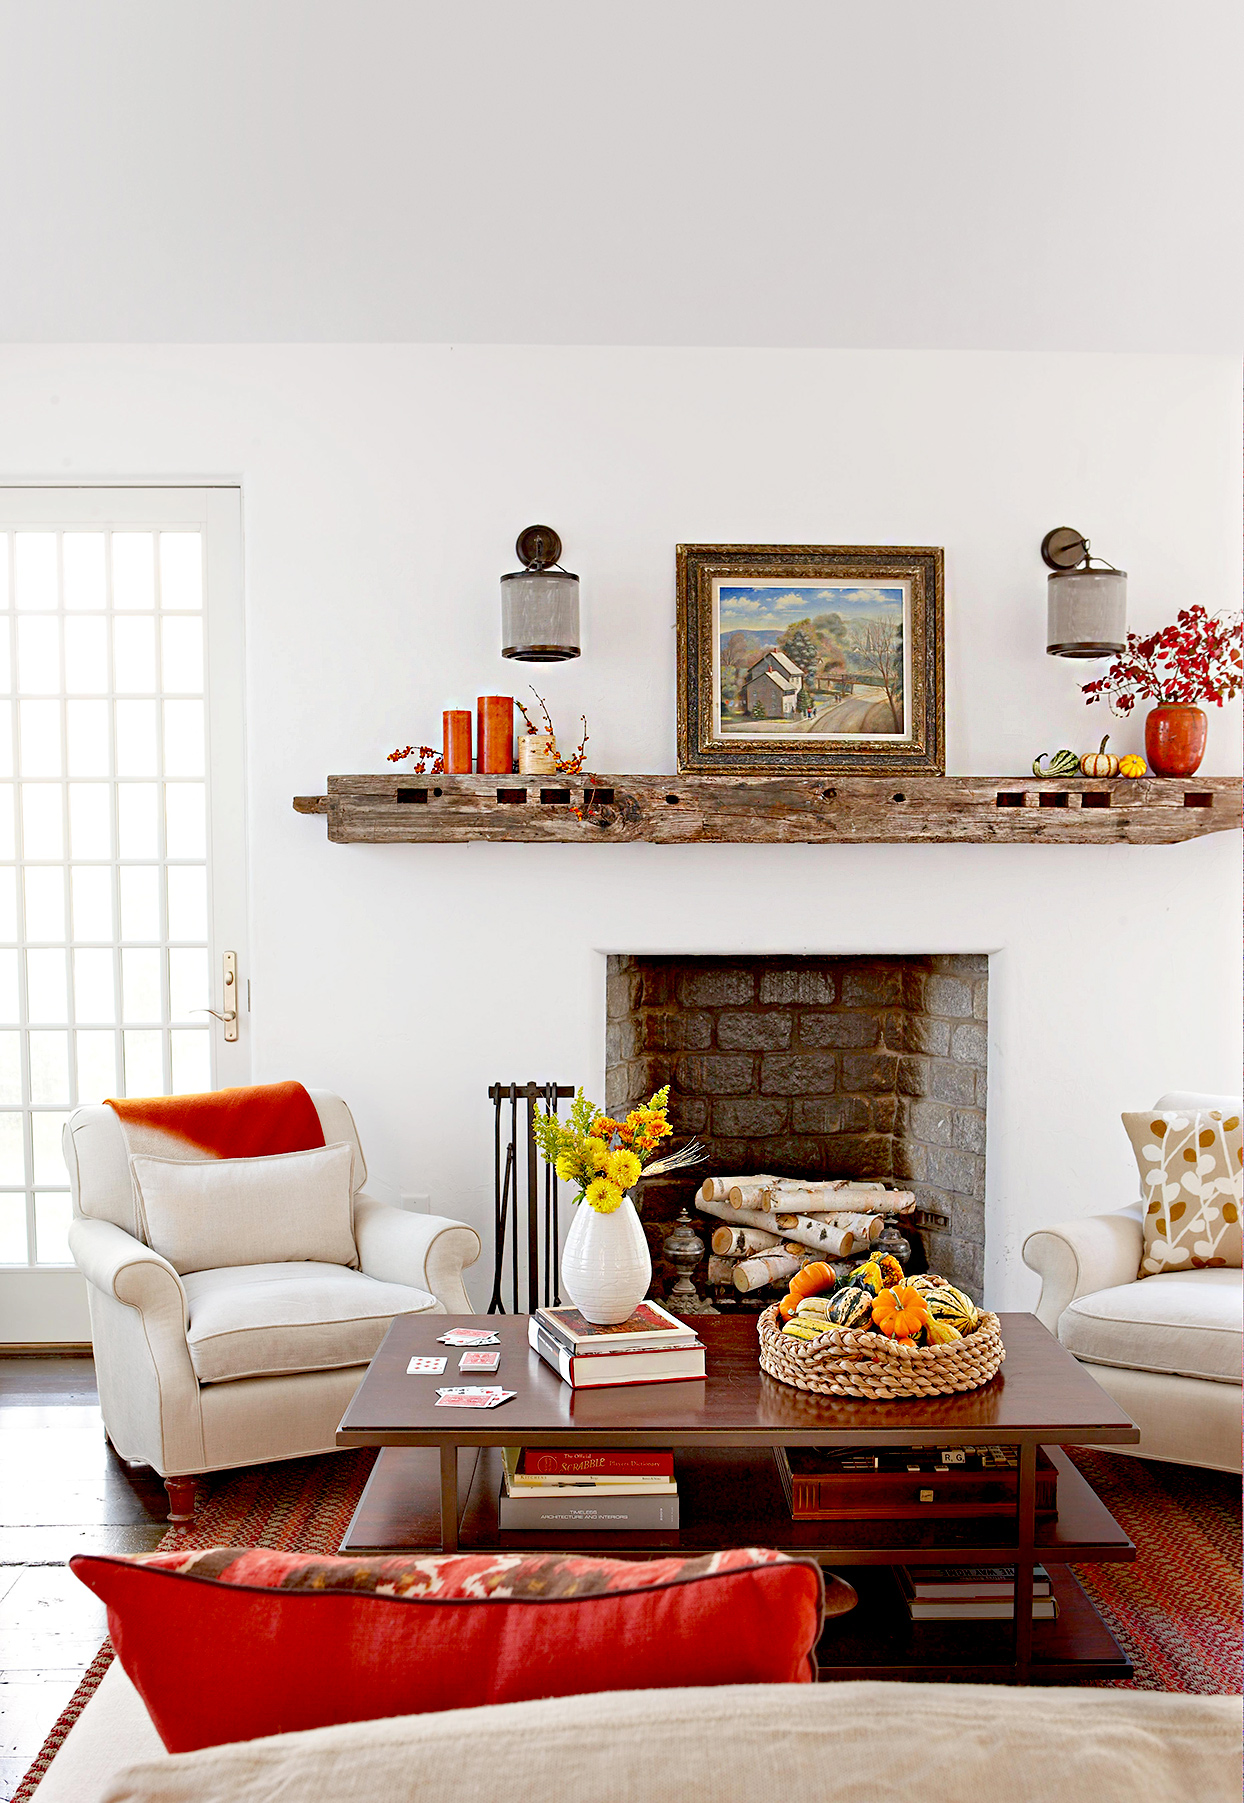 Living room with fireplace and fall décor